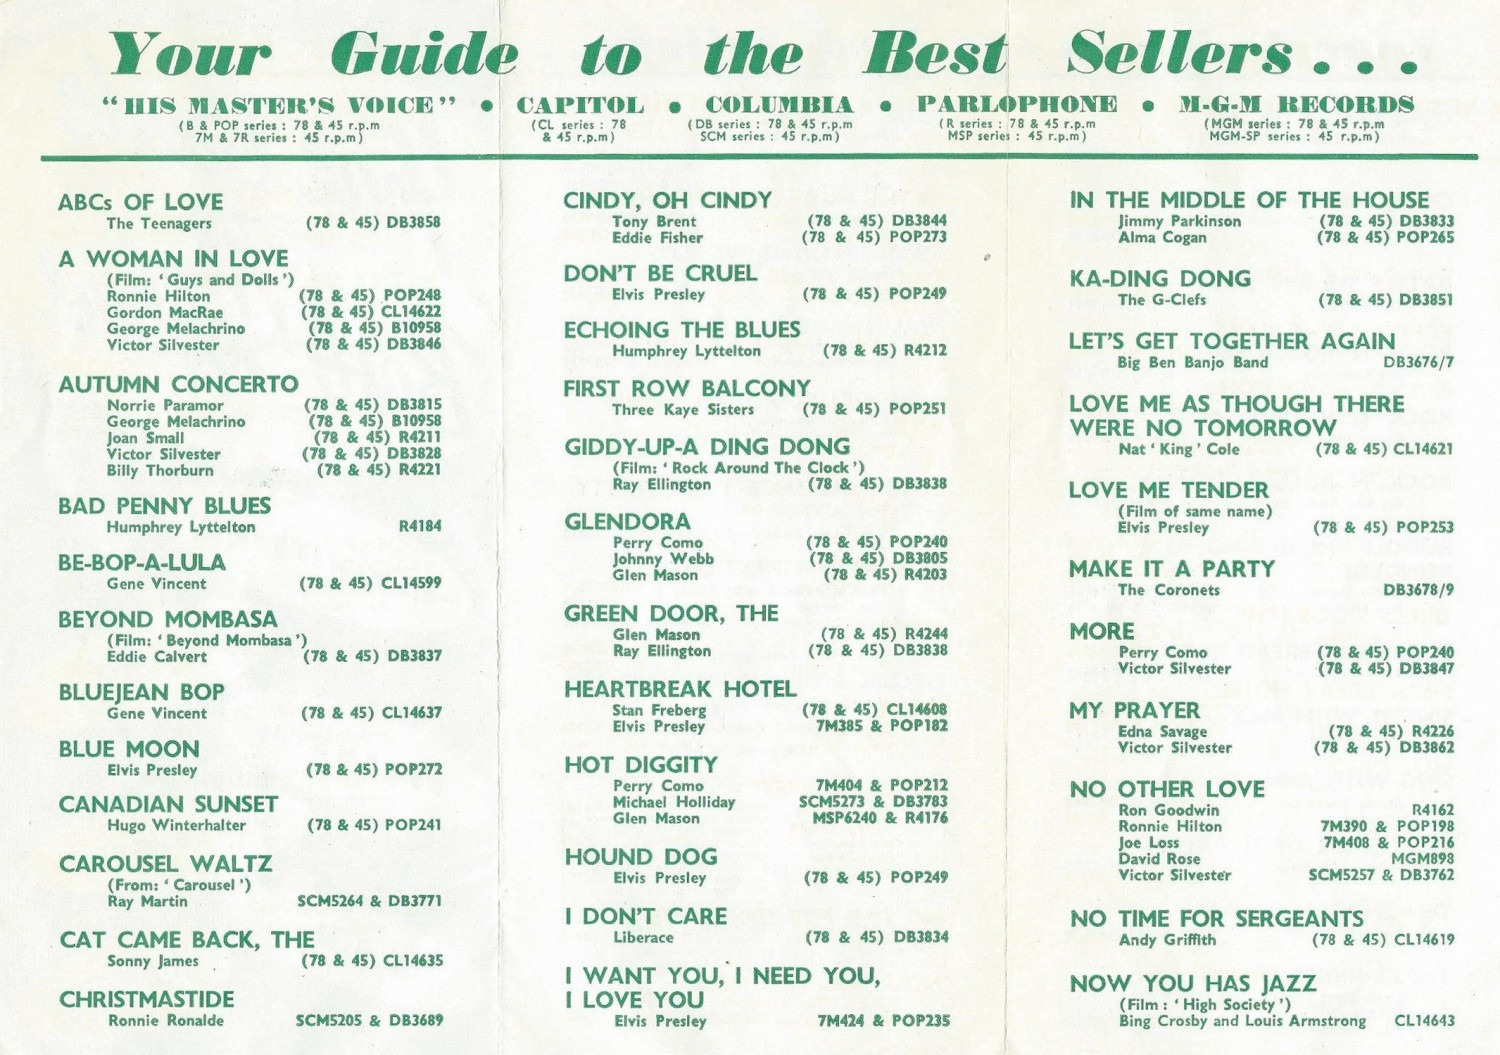 HMV Your Guide To Best Sellers 1956-11 (Alan White) 02